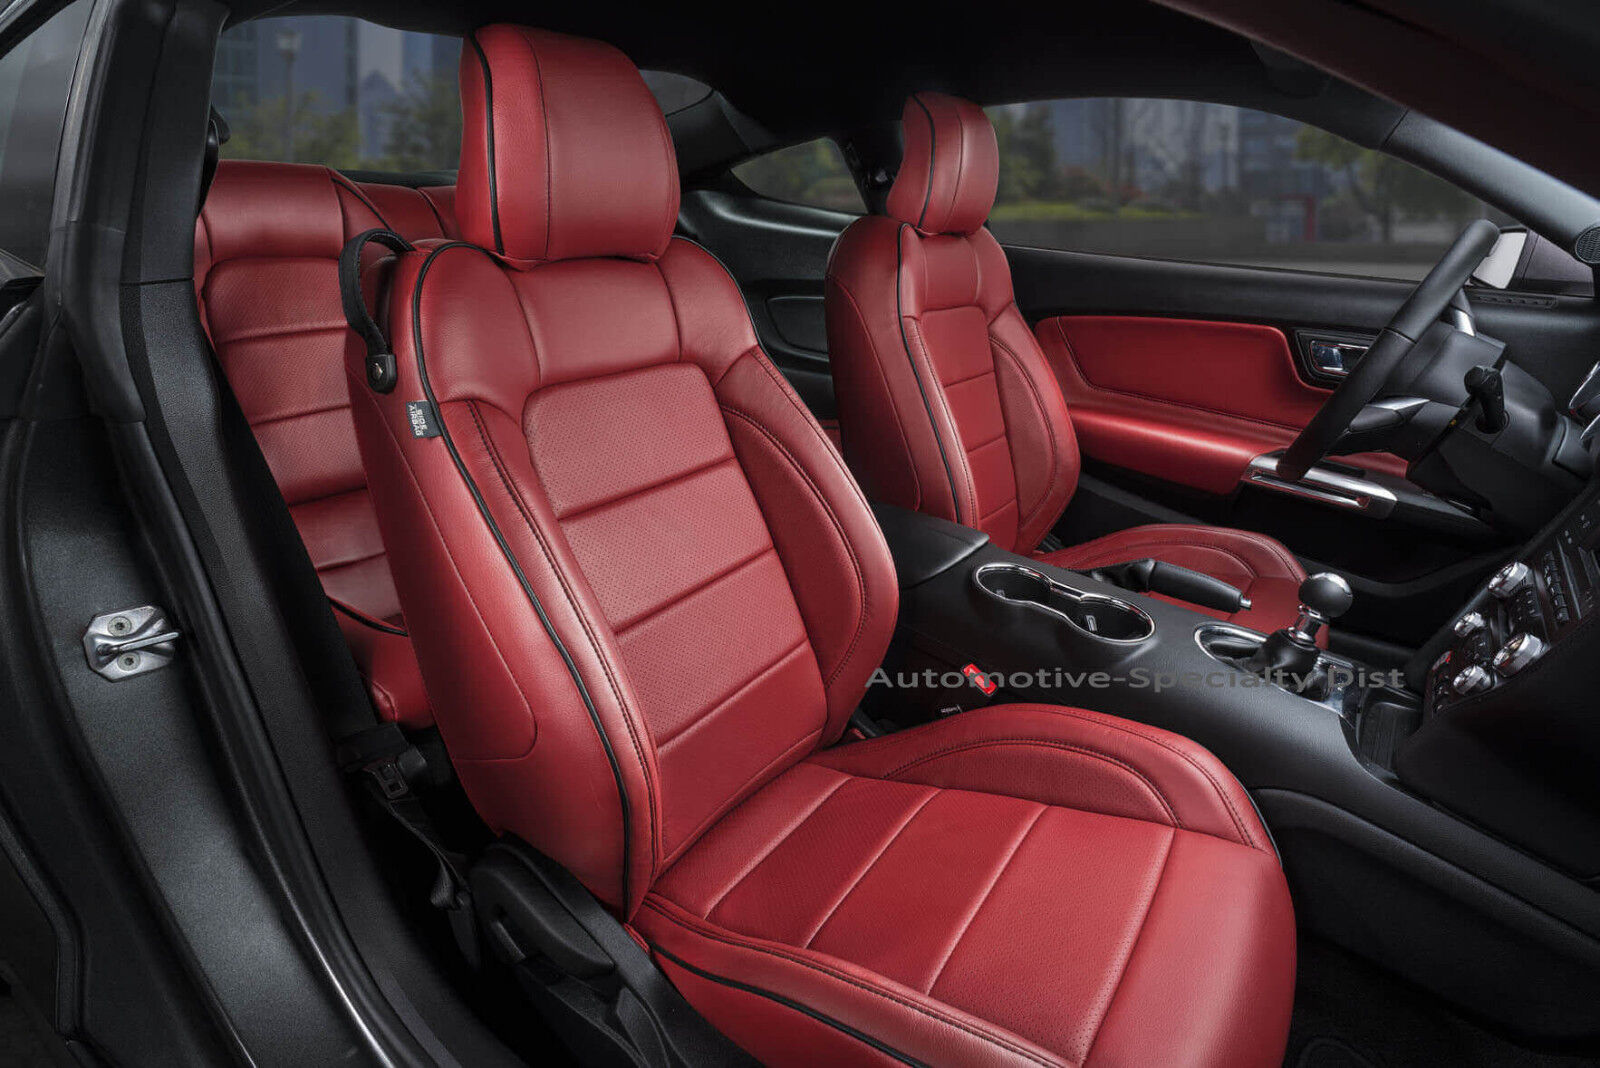 Katzkin cardinal red replacement leather interior seat covers fits 2015 2019 ford mustang coupe v6 gt eco